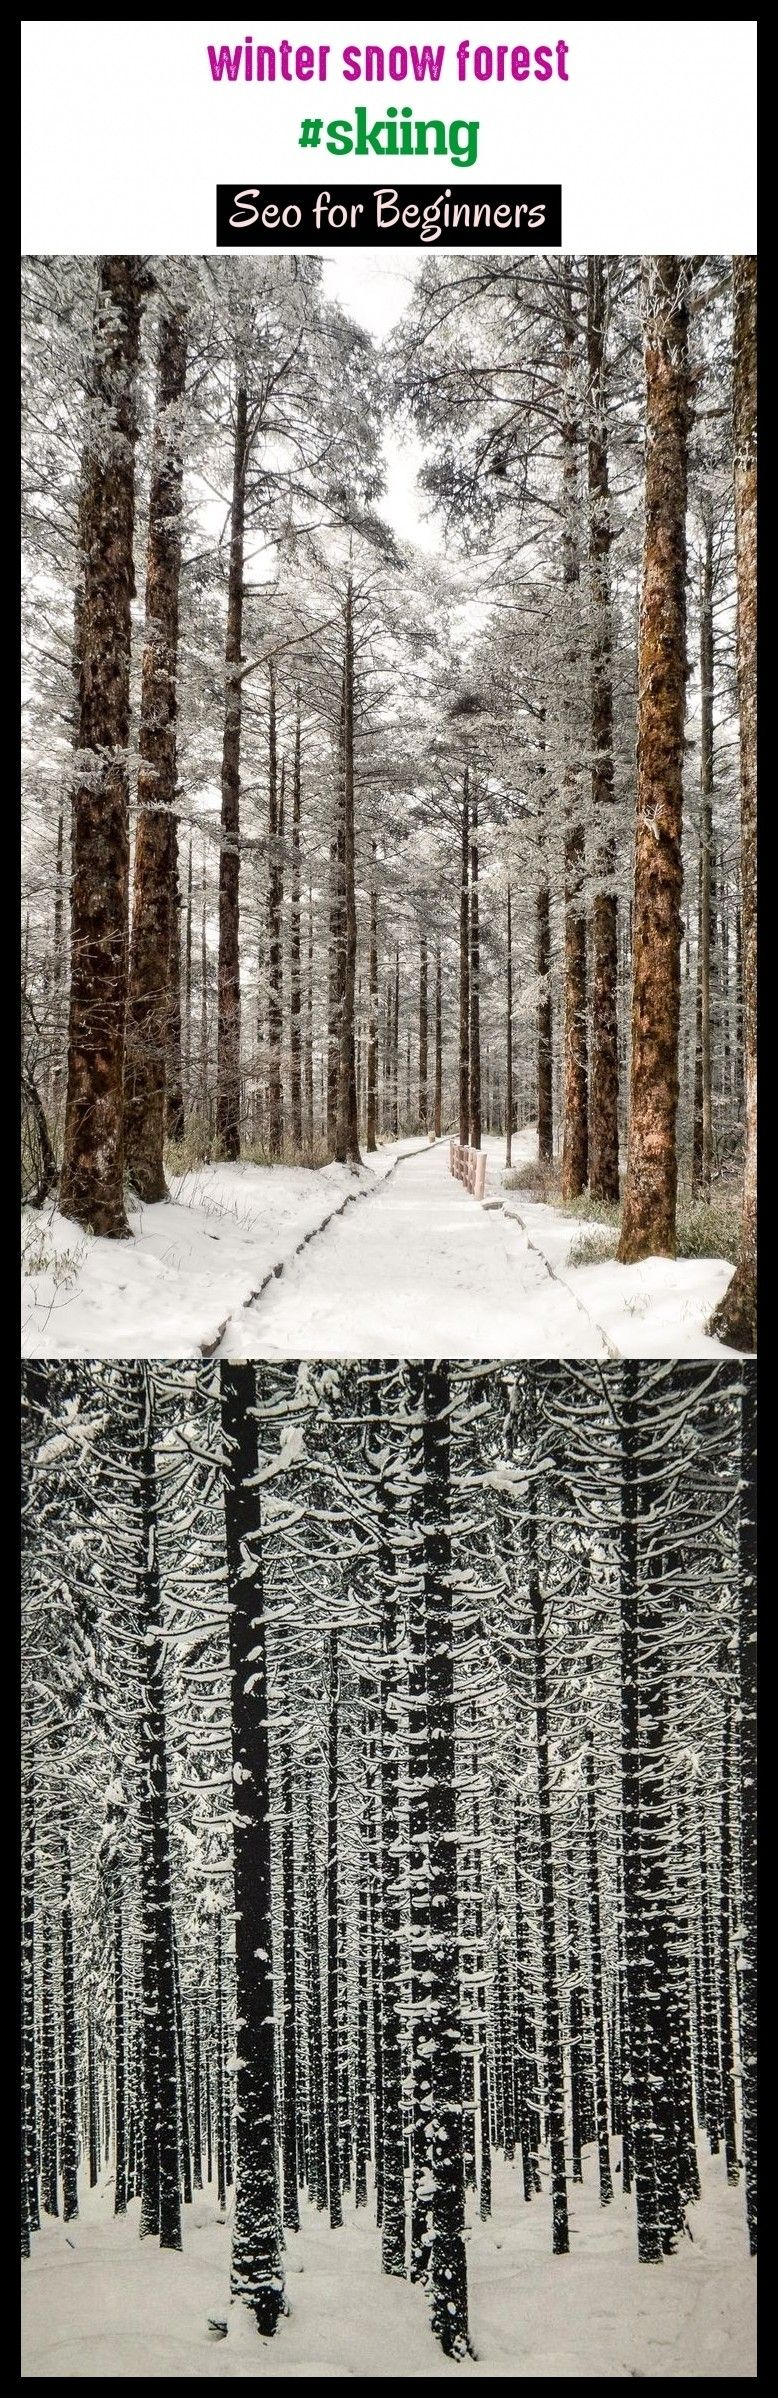 , Winter snow forest #skiing #seotrends #outdoors. winter snow photography, winter snow christmas, winter snow scenes, winter snow flakes, winter snow w…, My Winter Blog 2020, My Winter Blog 2020